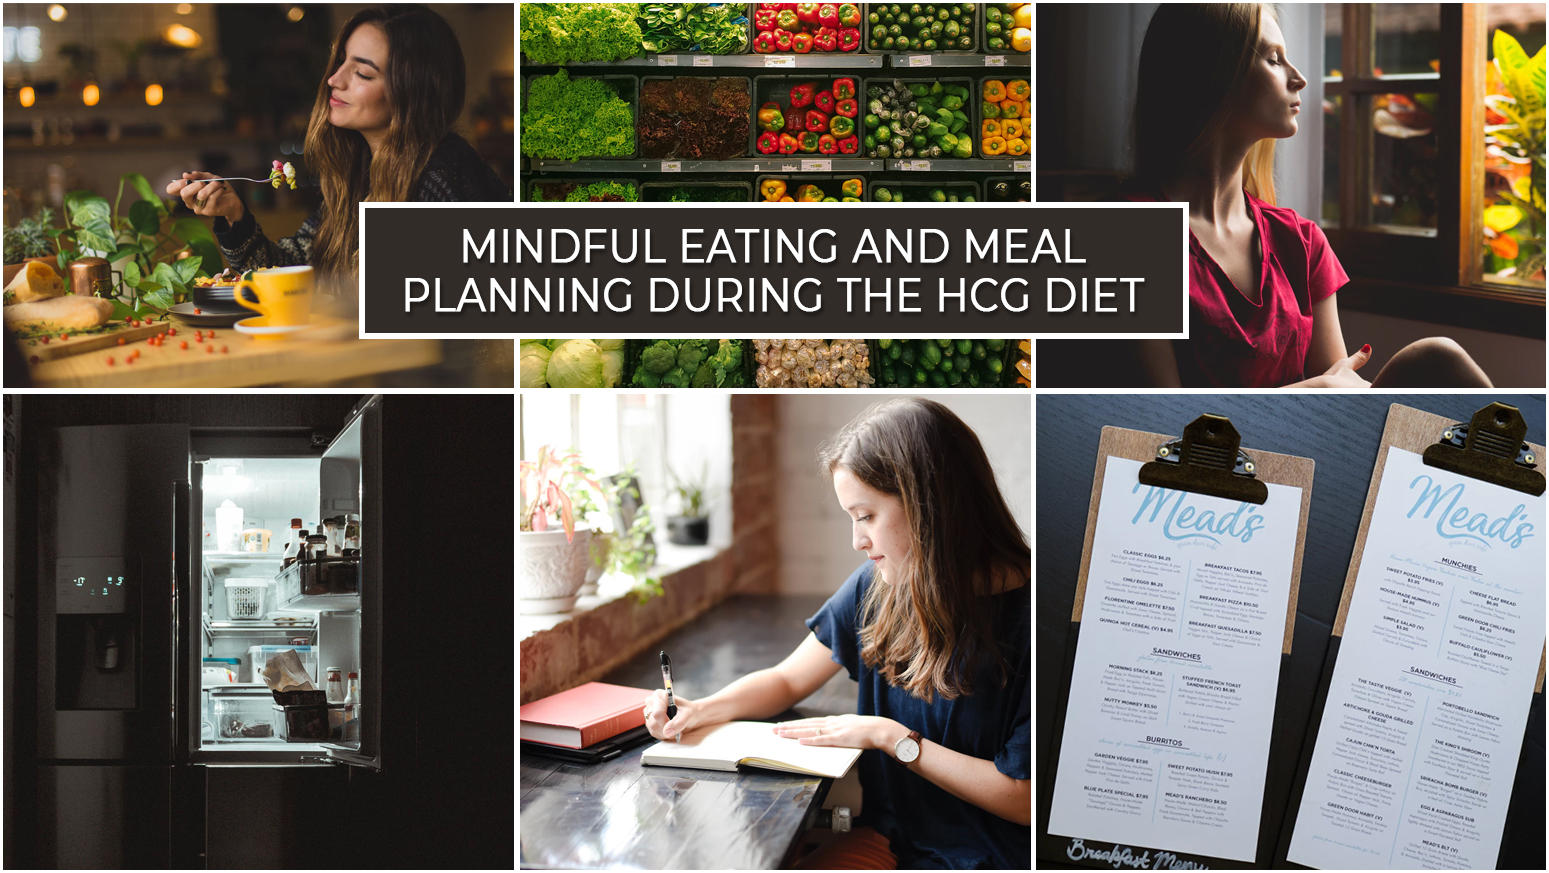 MINDFUL EATING AND MEAL PLANNING DURING THE HCG DIET